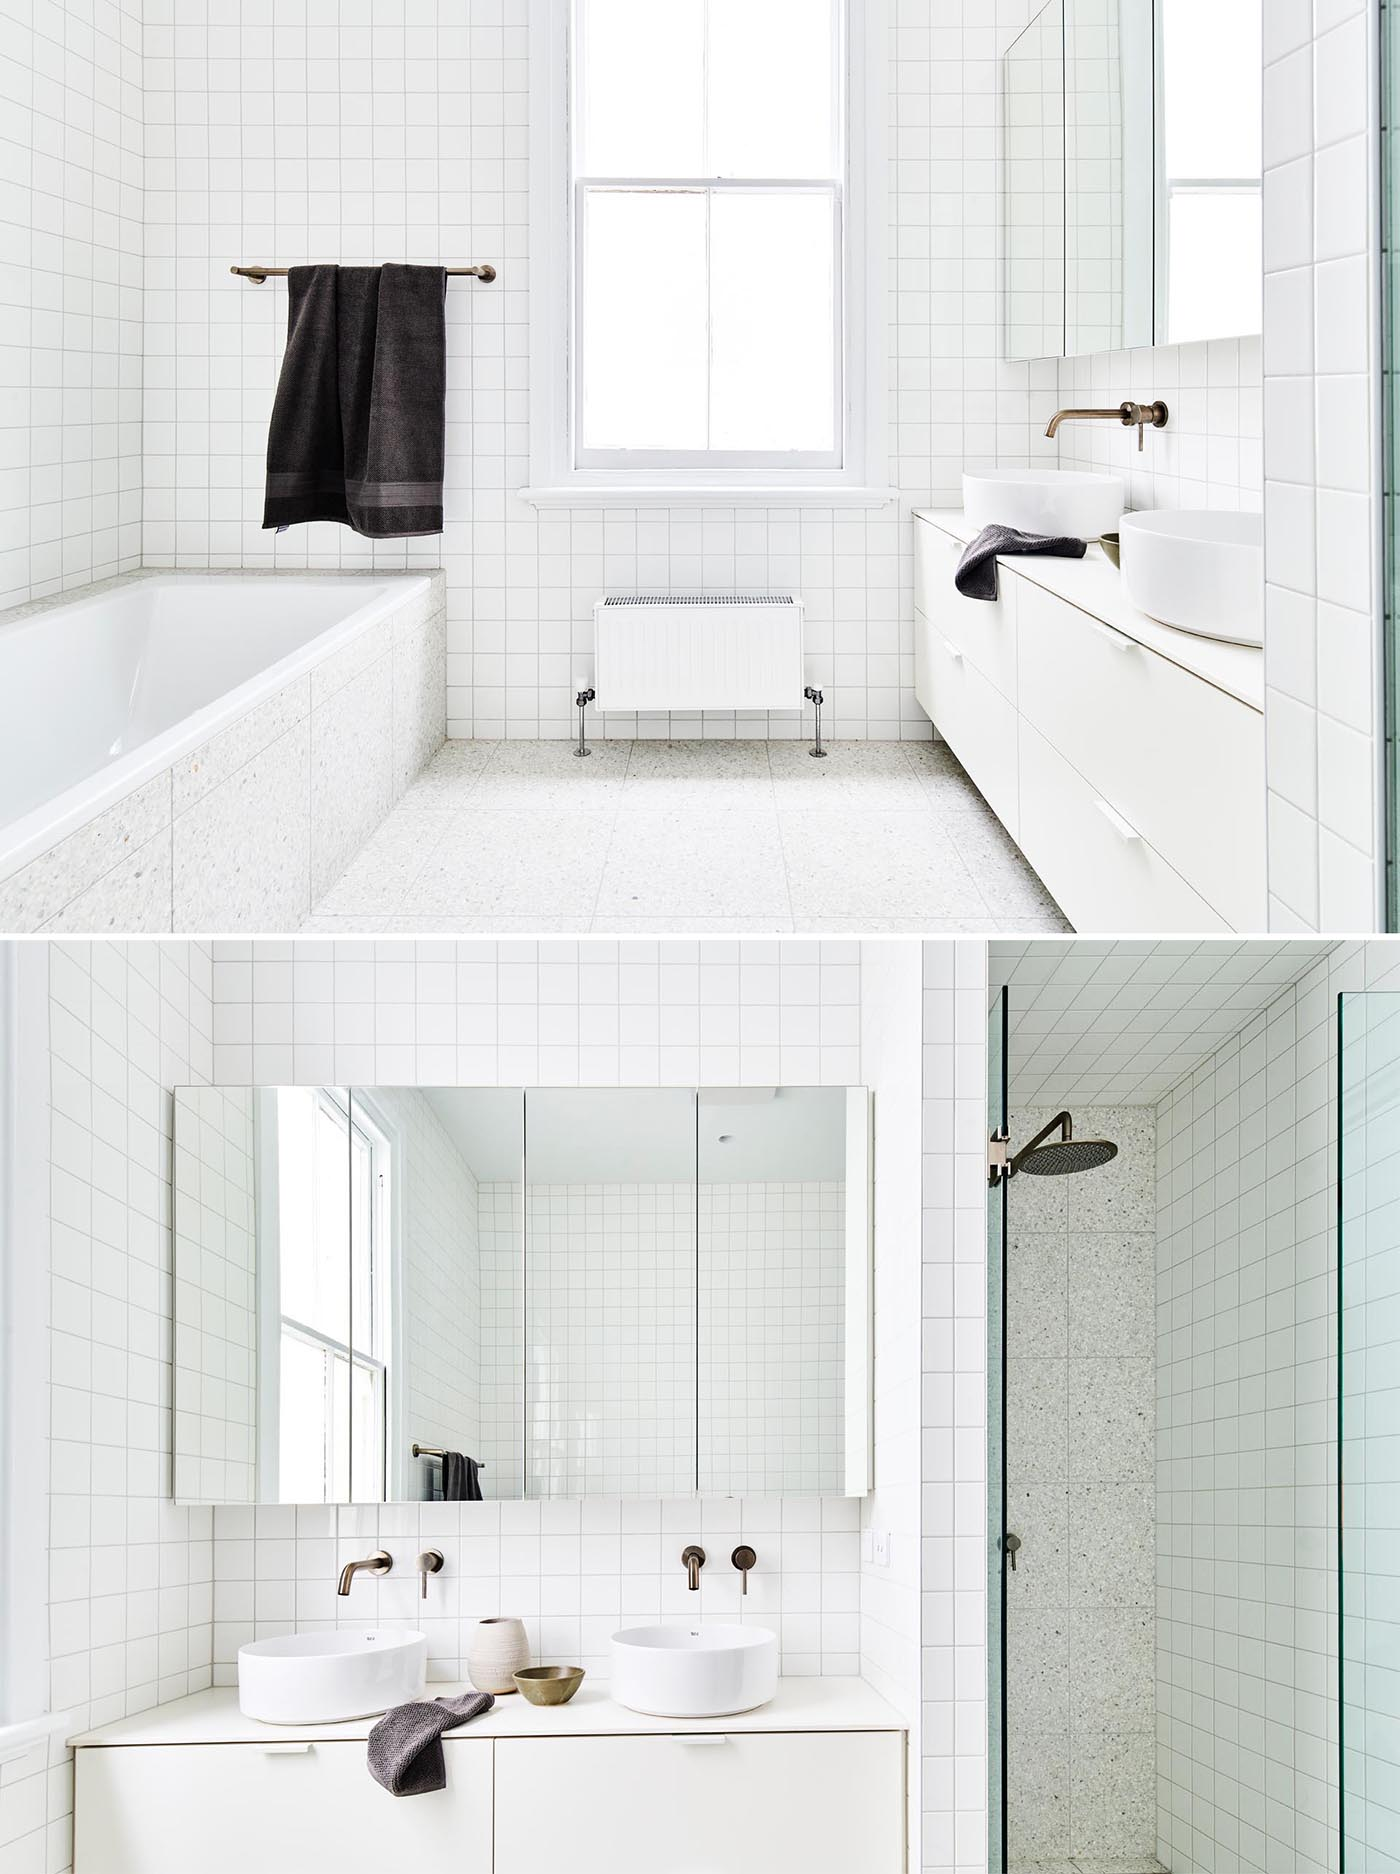 A modern white bathroom with square tiles.